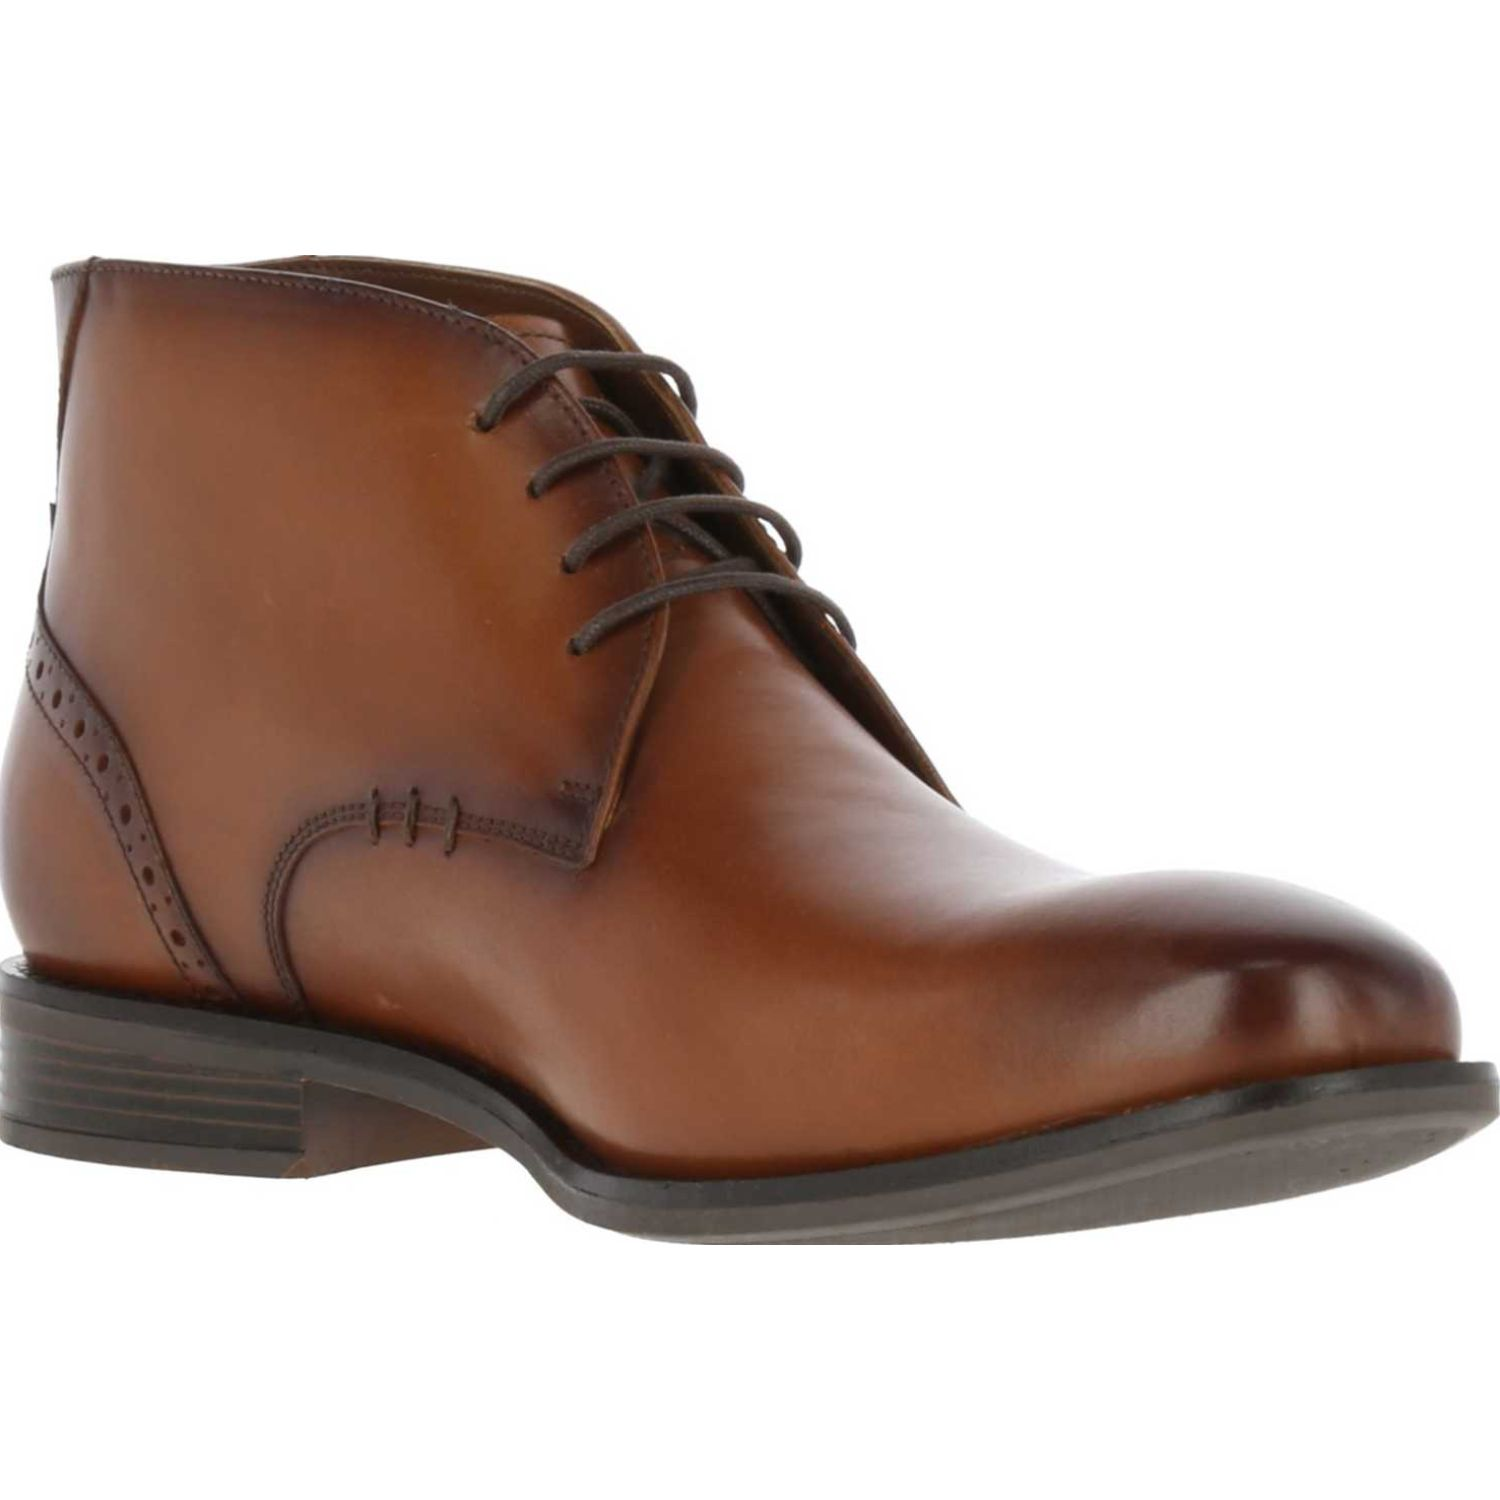 Calzado de Hombre Hush Puppies Marron forte reaction ii